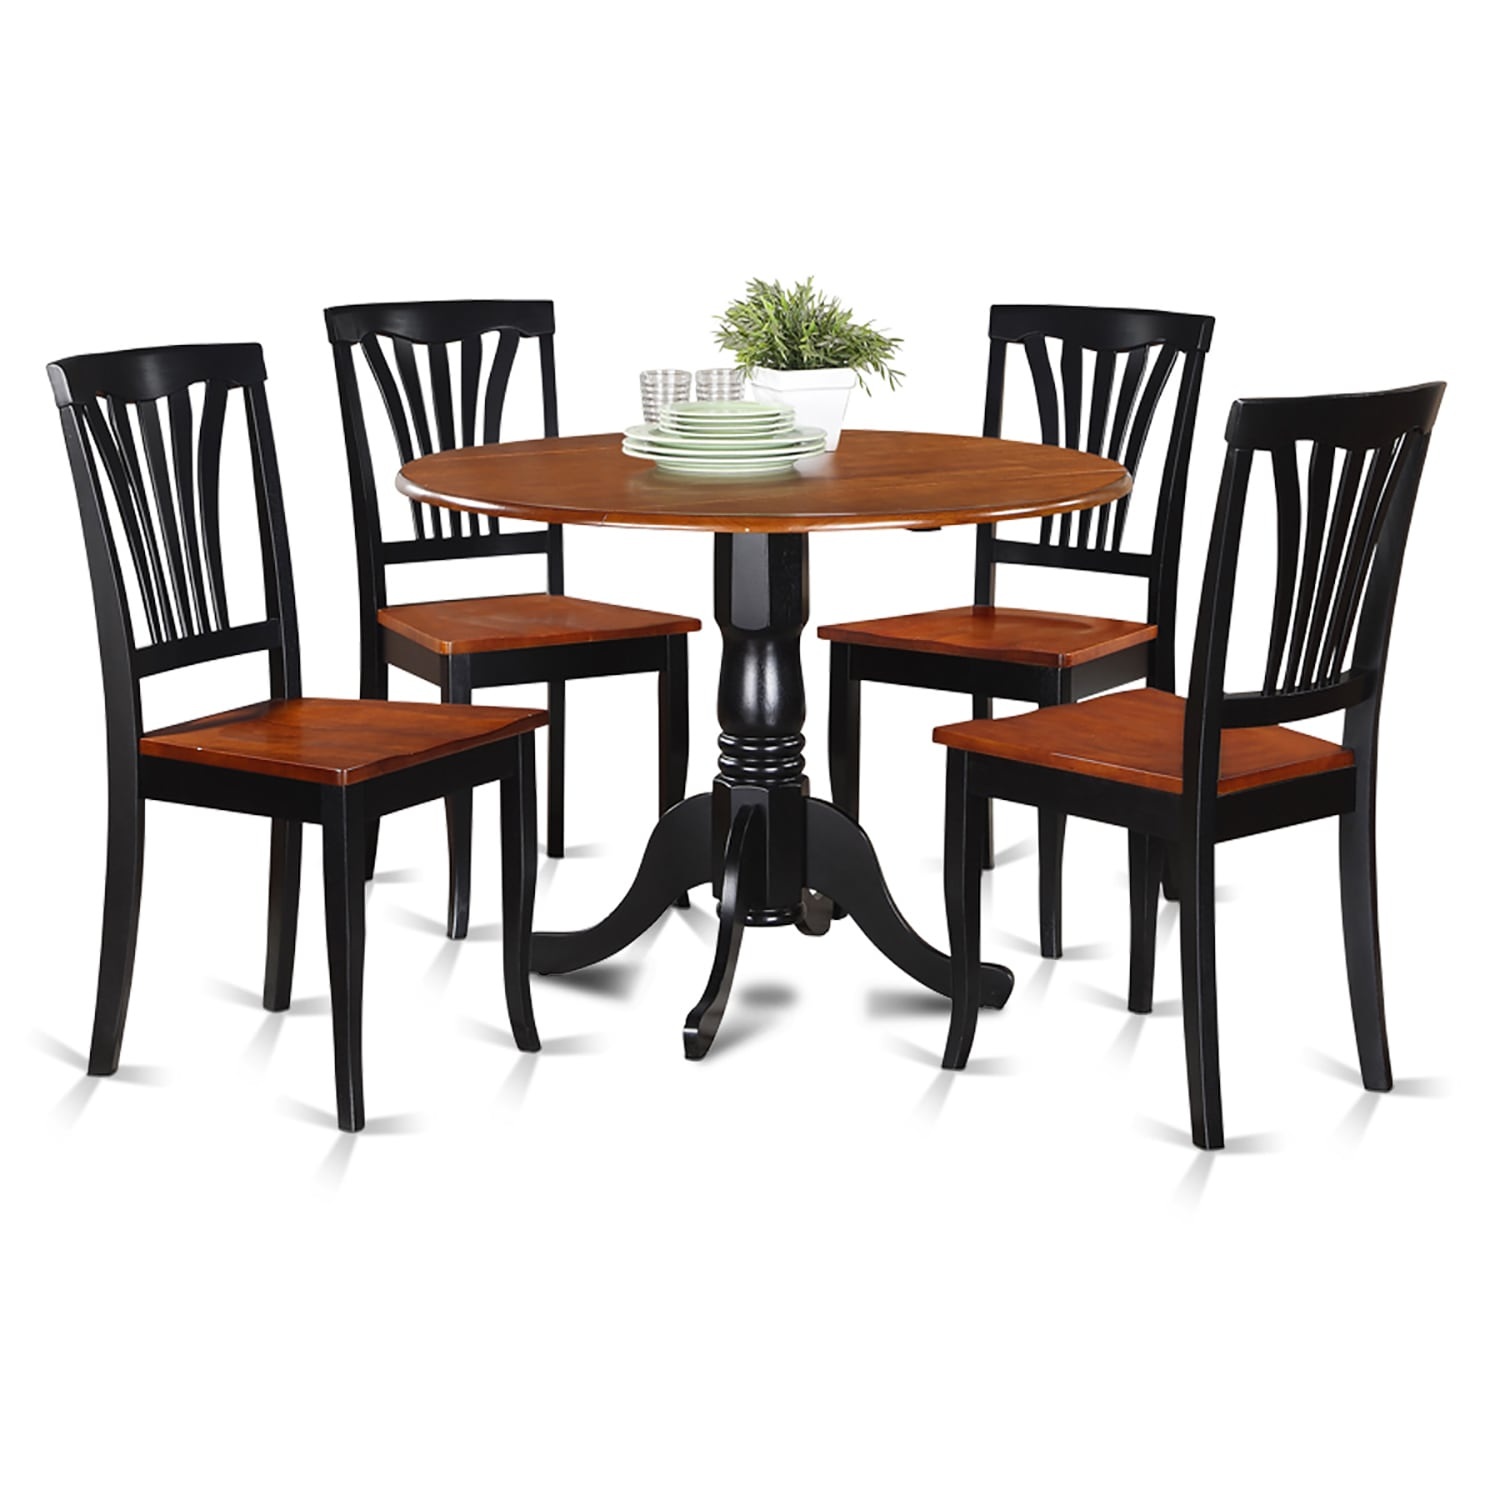 DLAV5-LC 5 PC Dublin kitchen table set-Dining table and 4 Kitchen ...